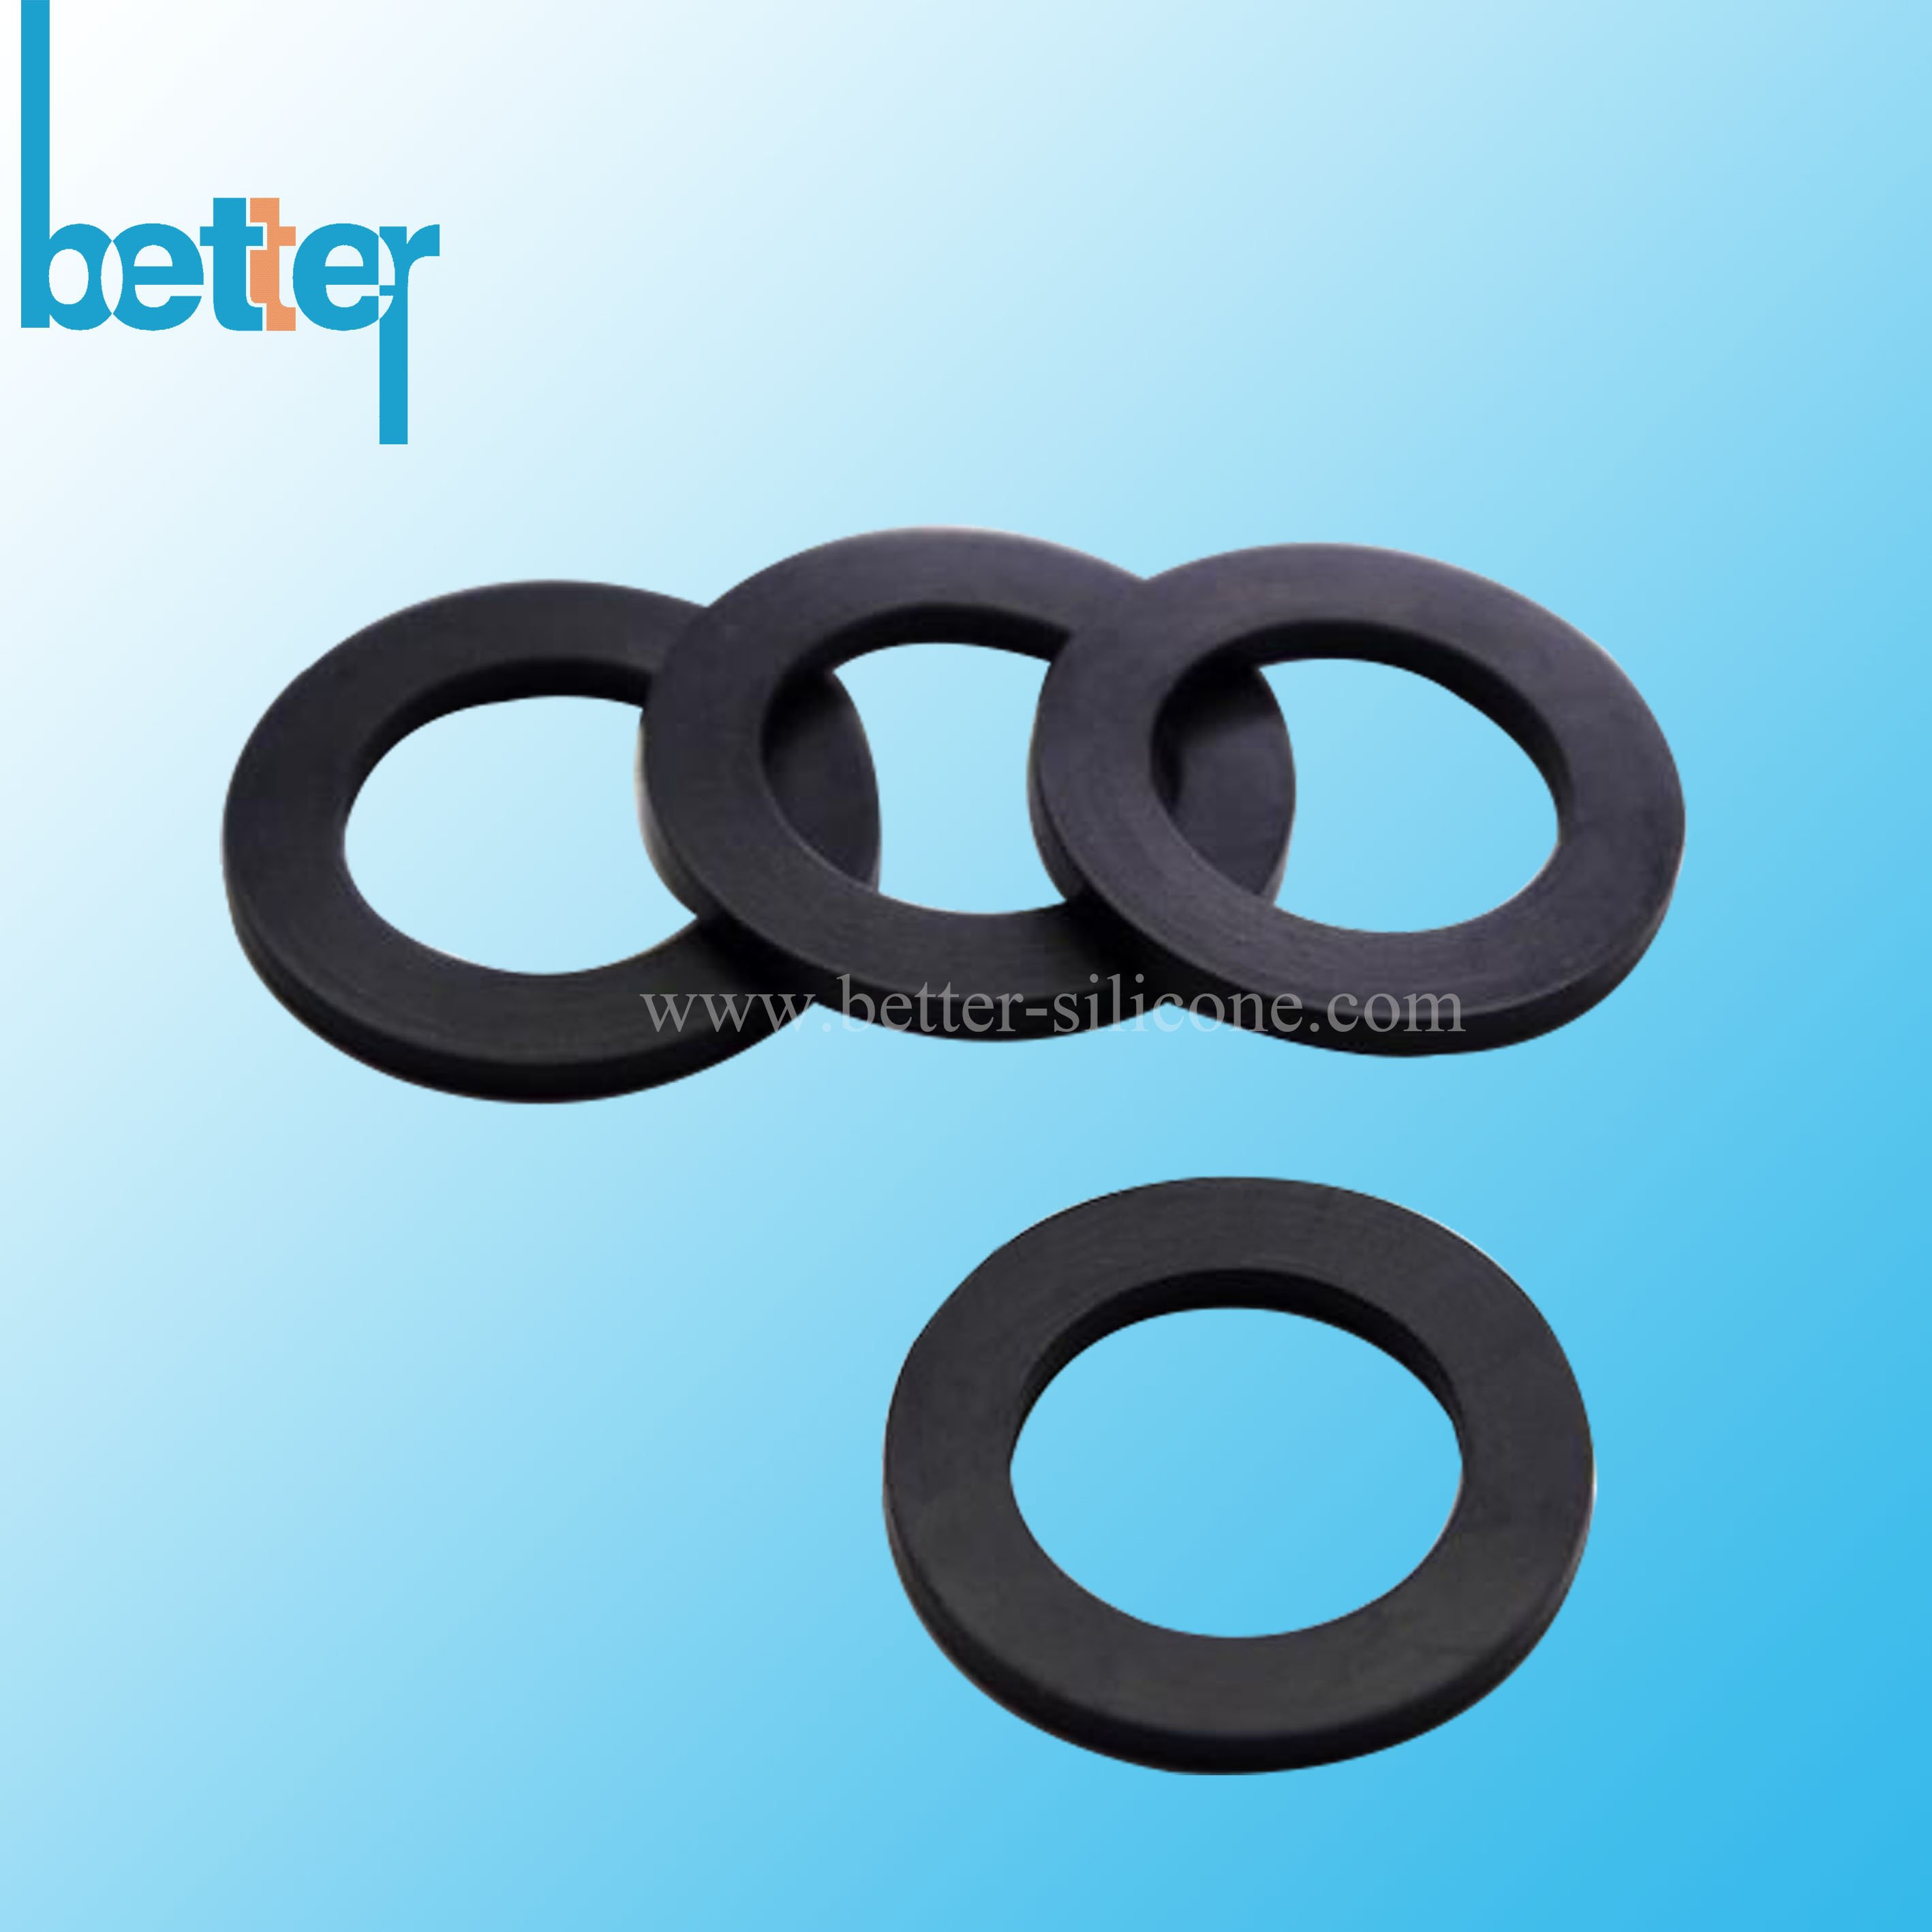 EPDM Rubber Washer.jpg